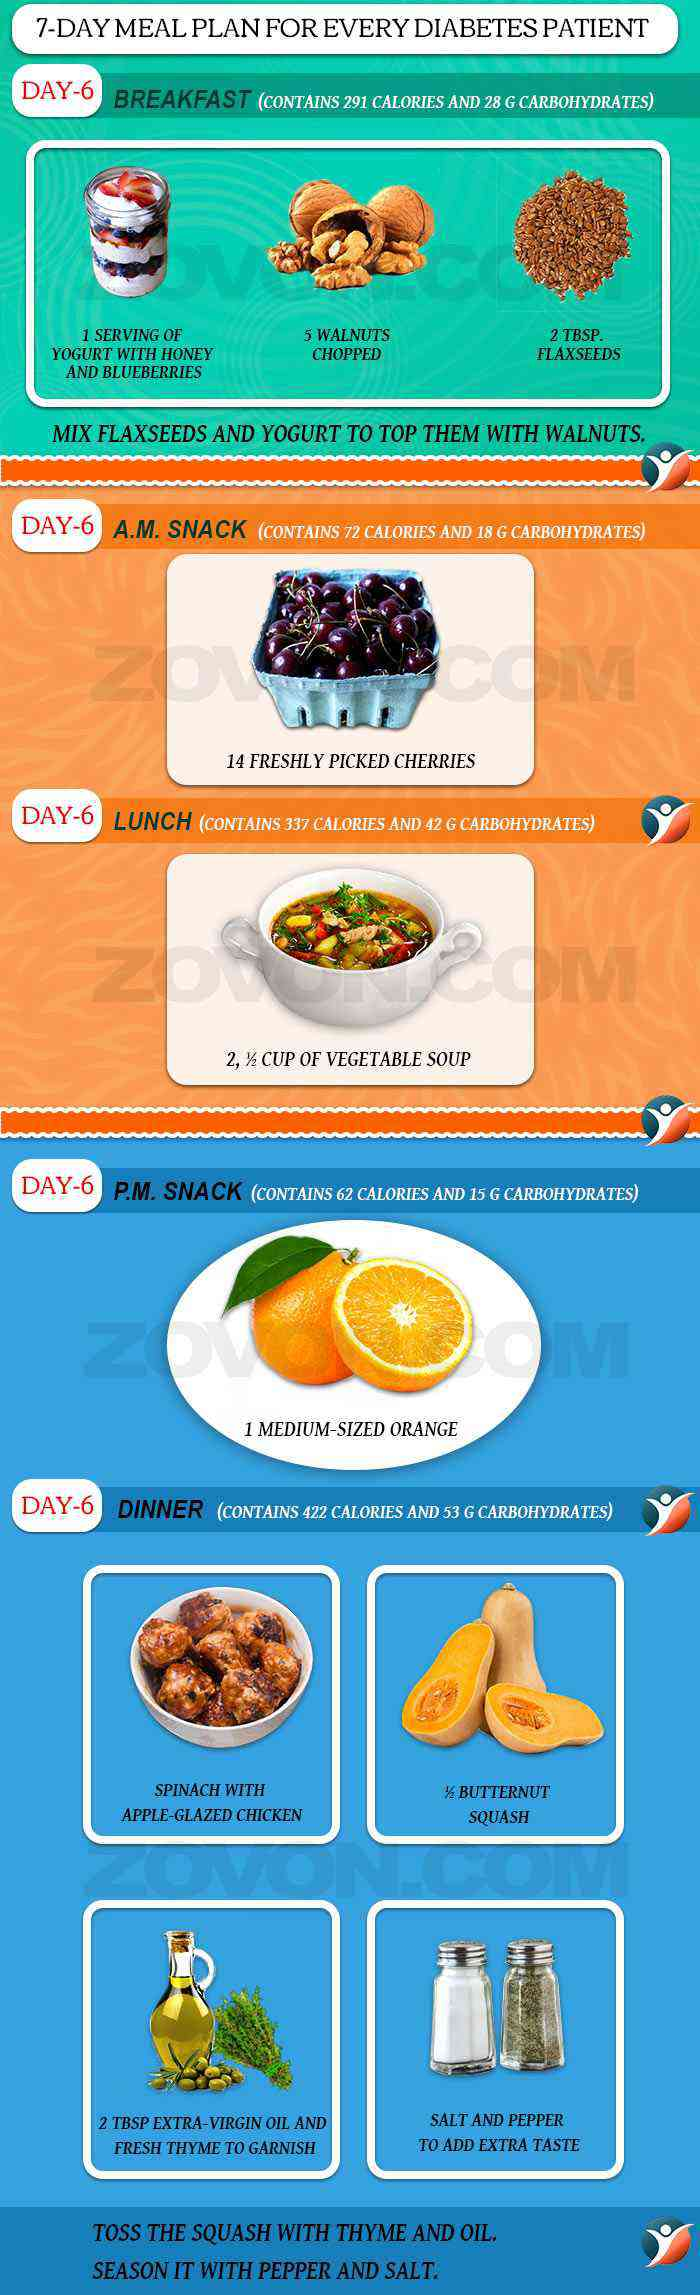 diabetes diet plan day 6